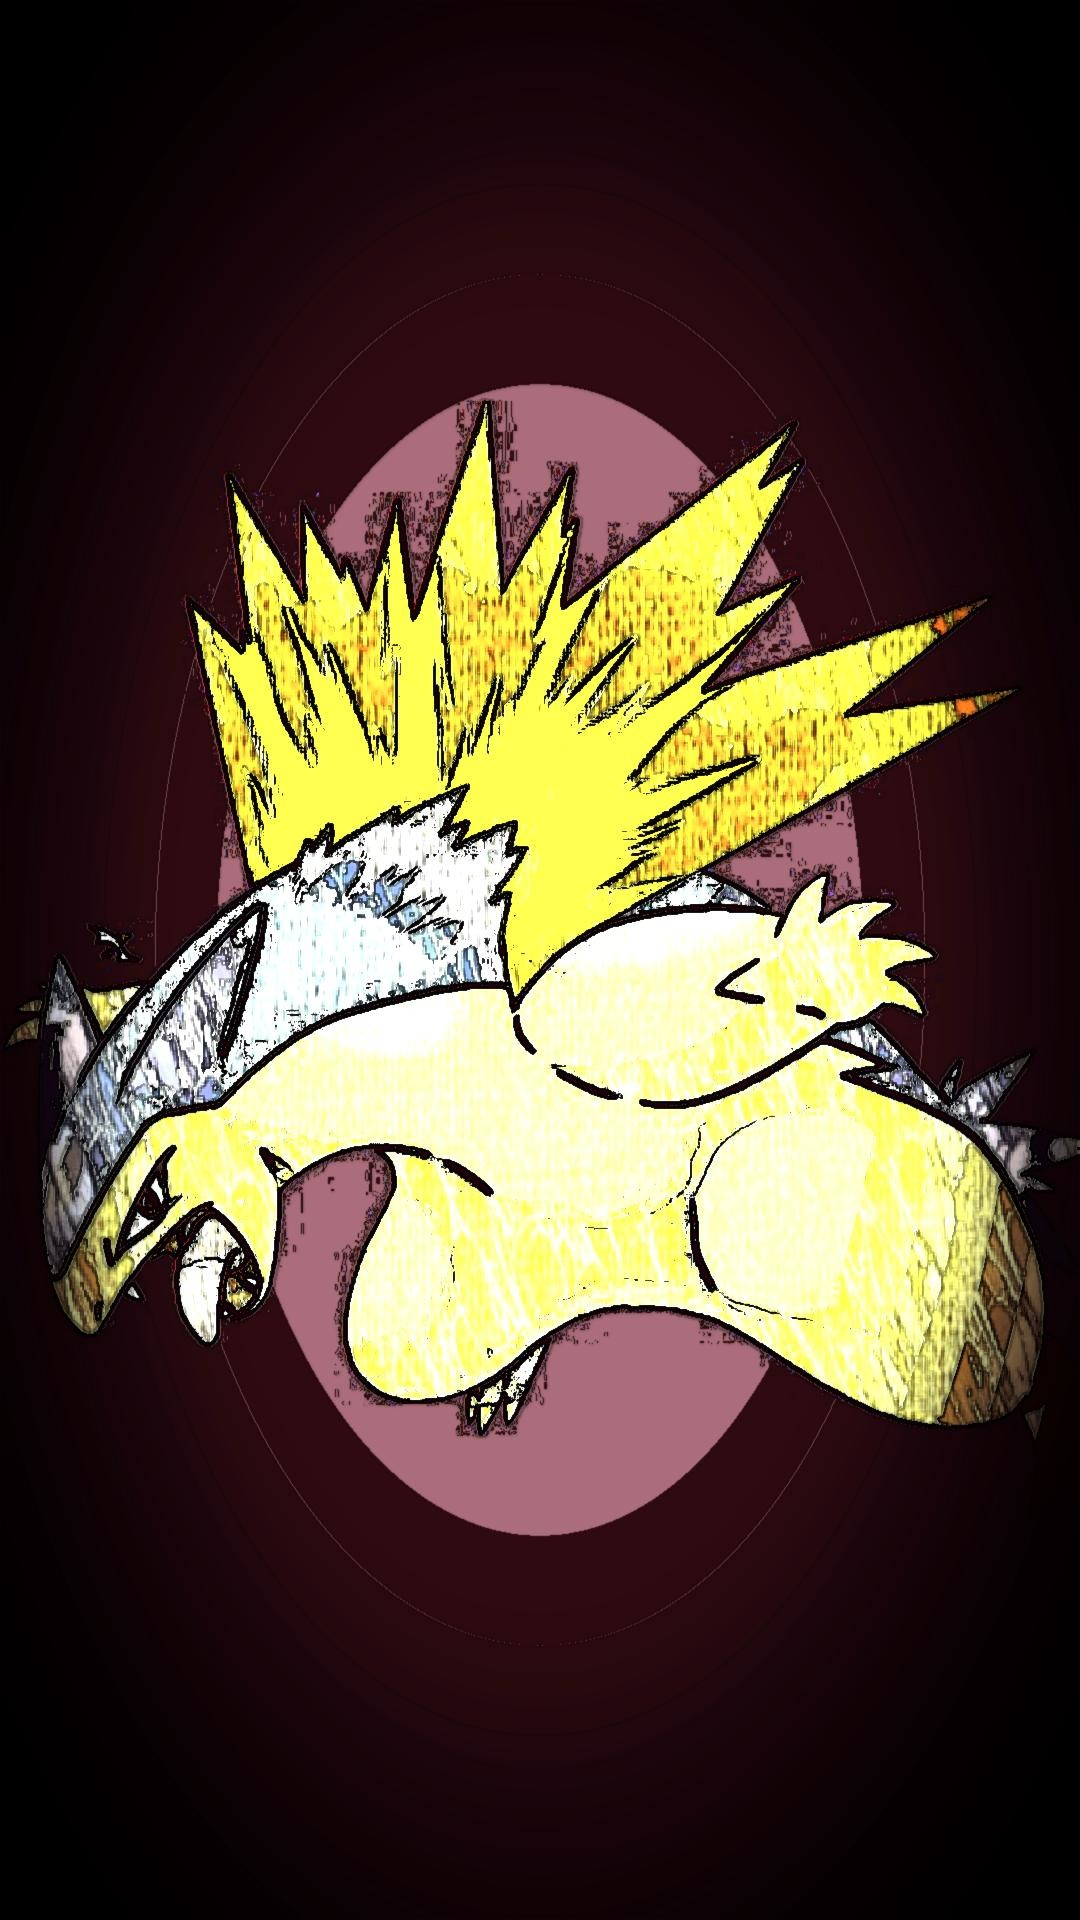 Res: 1080x1920, An edited Typhlosion for a phone wallpaper, requested by Hedgehog706.